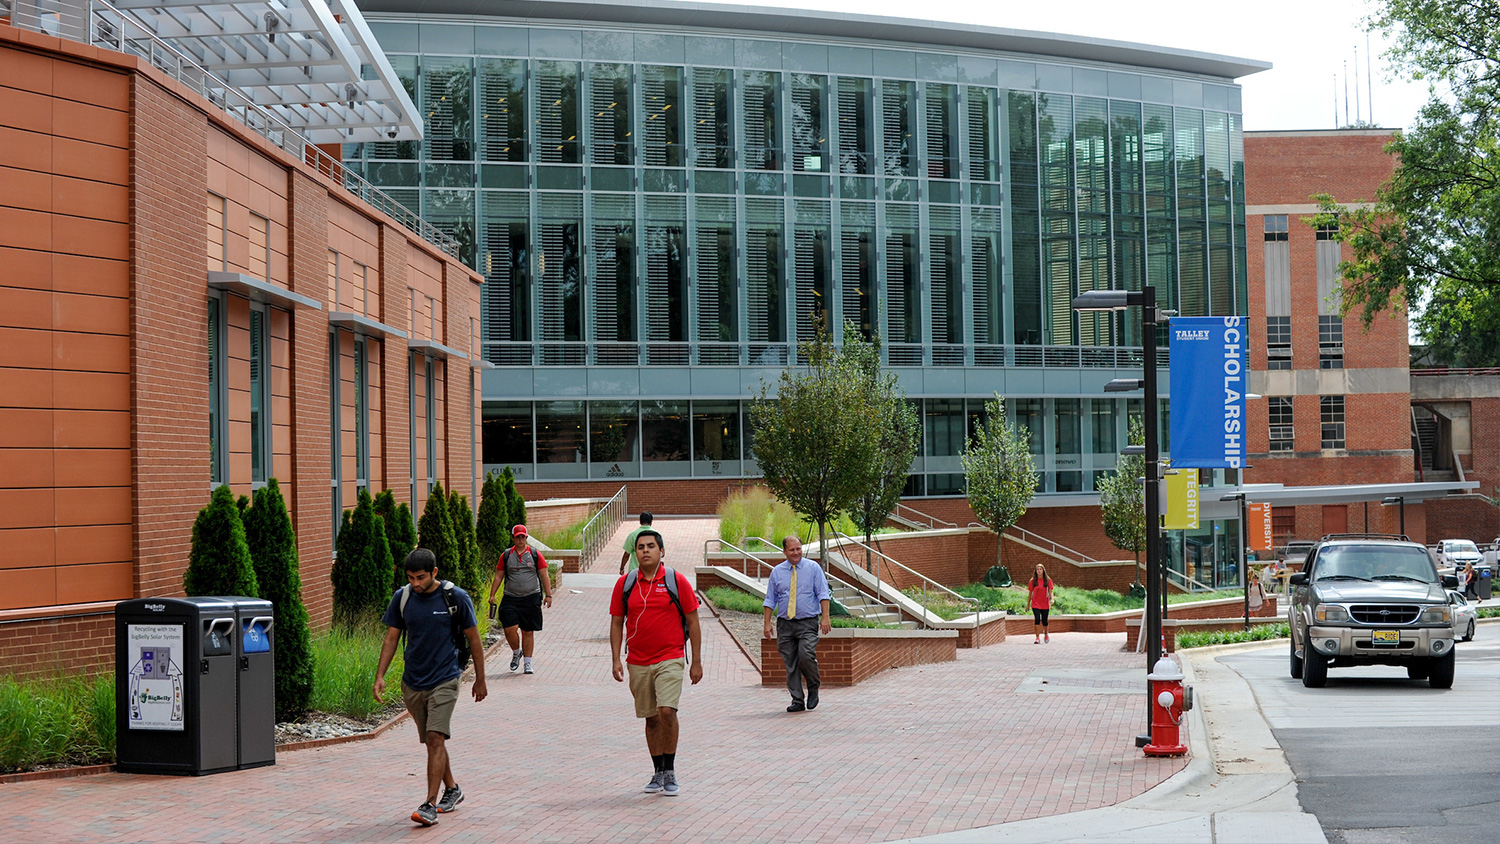 External Transfers - How to Apply - Parks Recreation and Tourism Management NC State